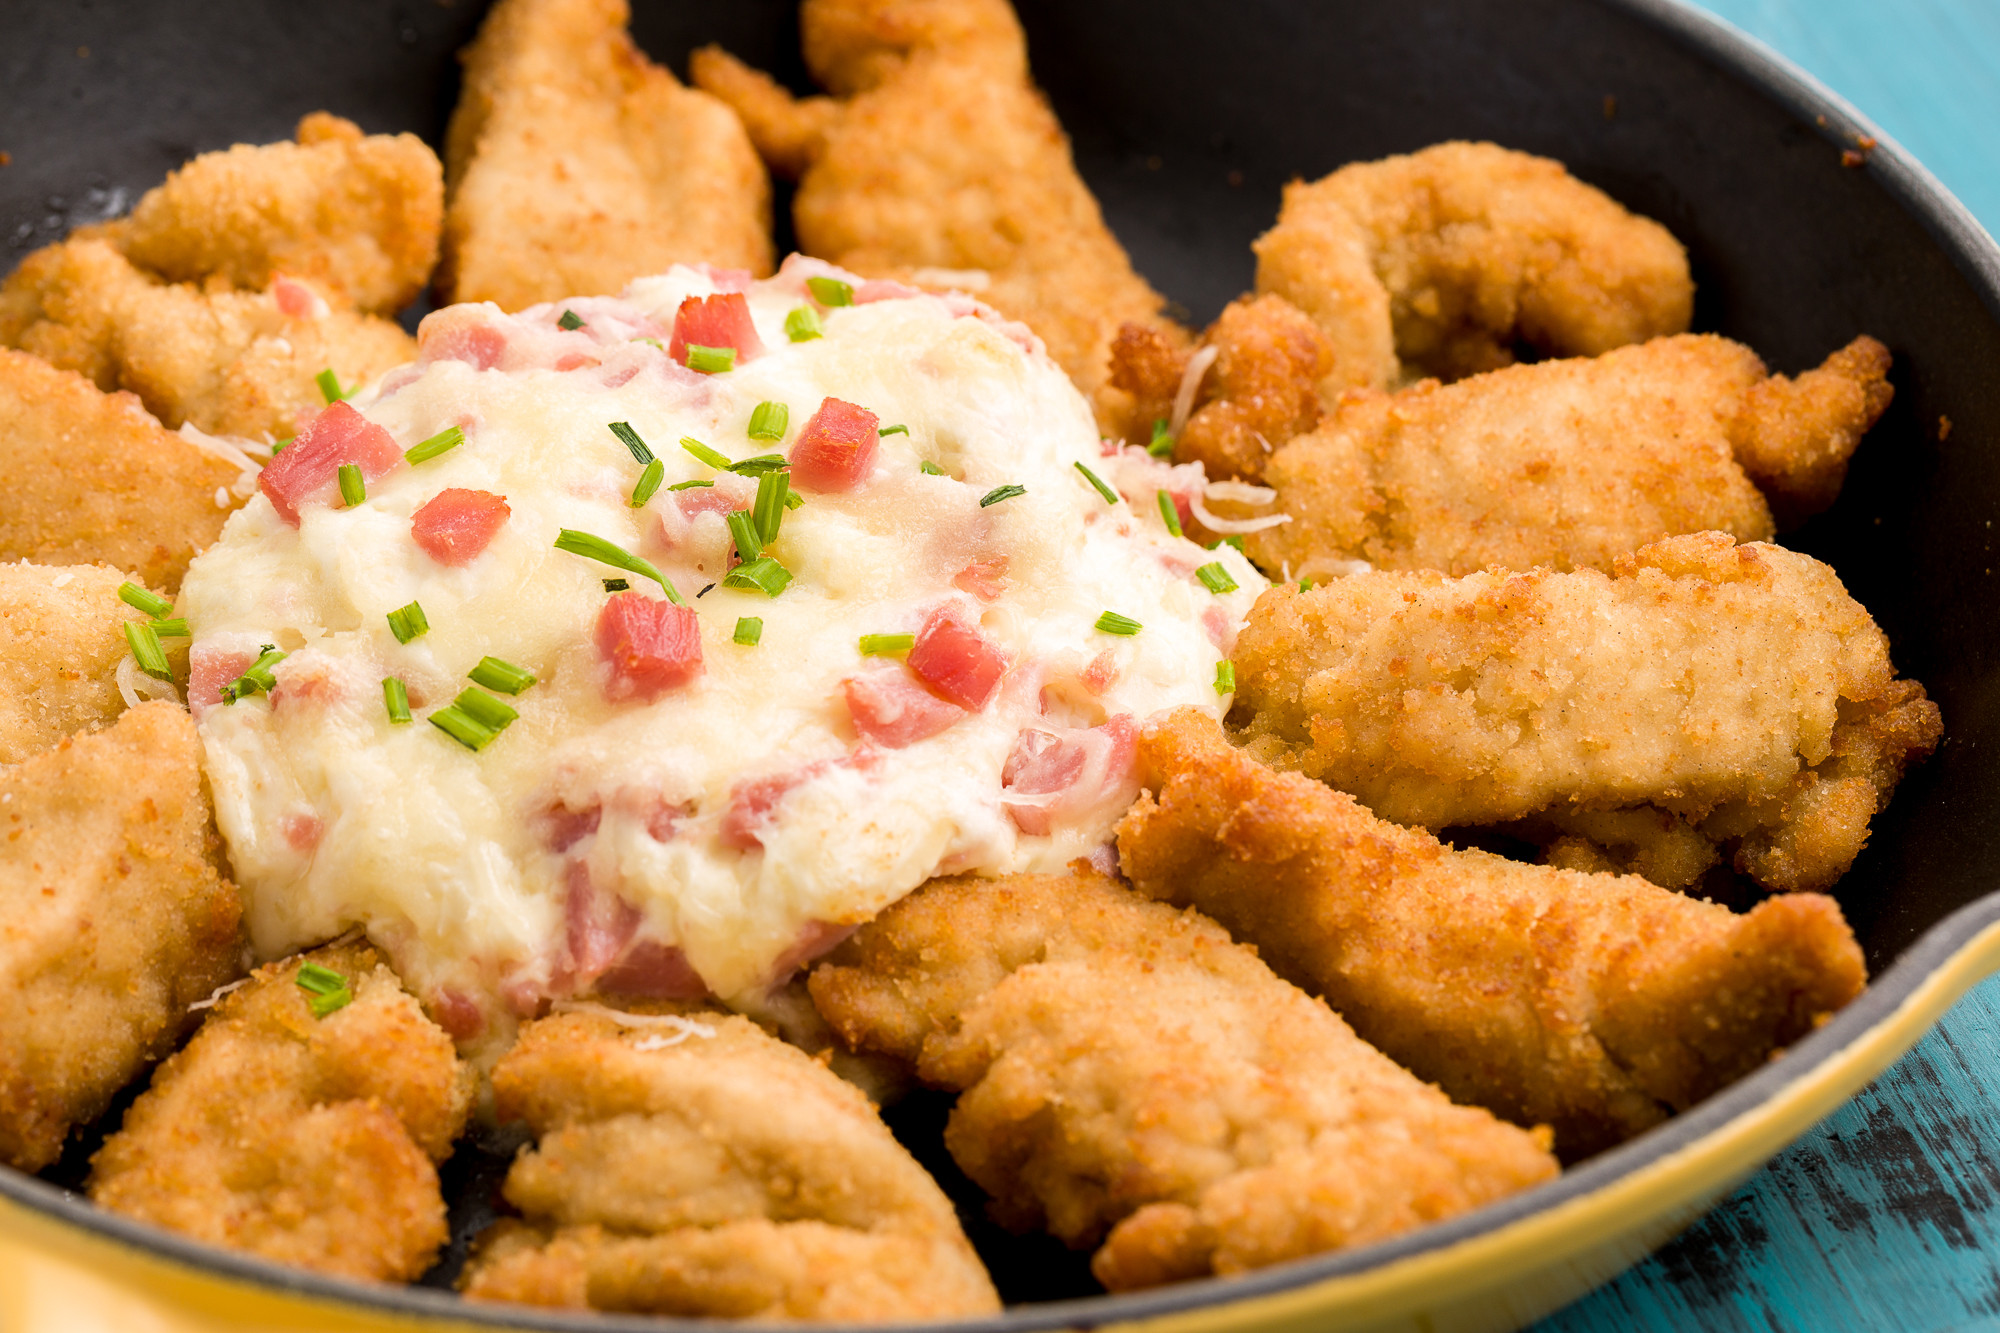 Appetizers For Dinner  22 Hearty Dinner Appetizers – Recipes for Filling